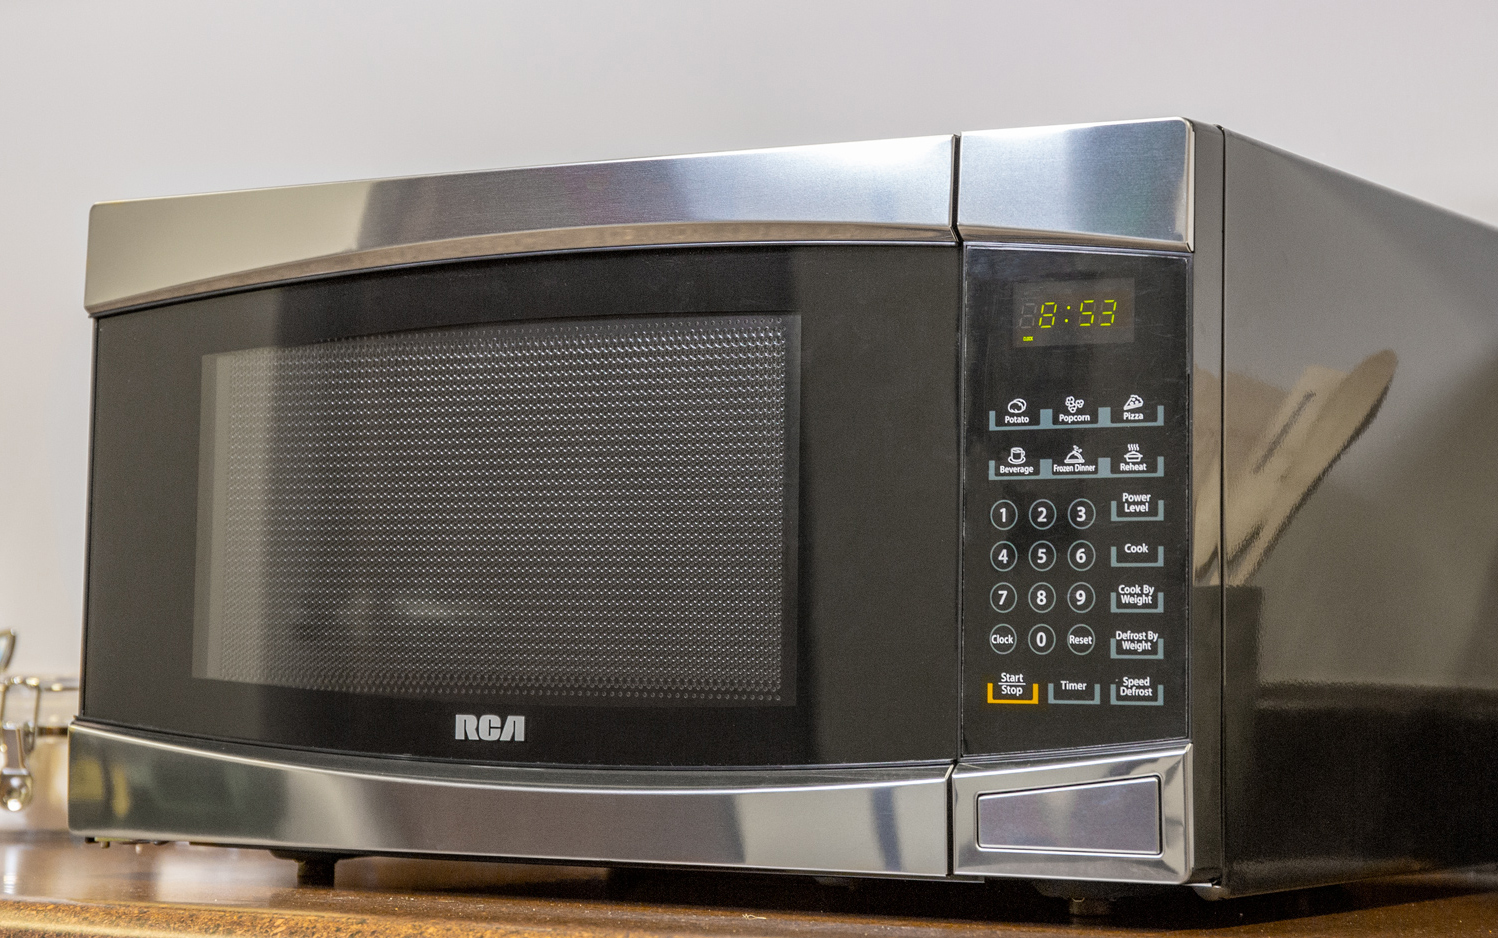 Best Small Microwaves 2019 Compact Countertop Microwave